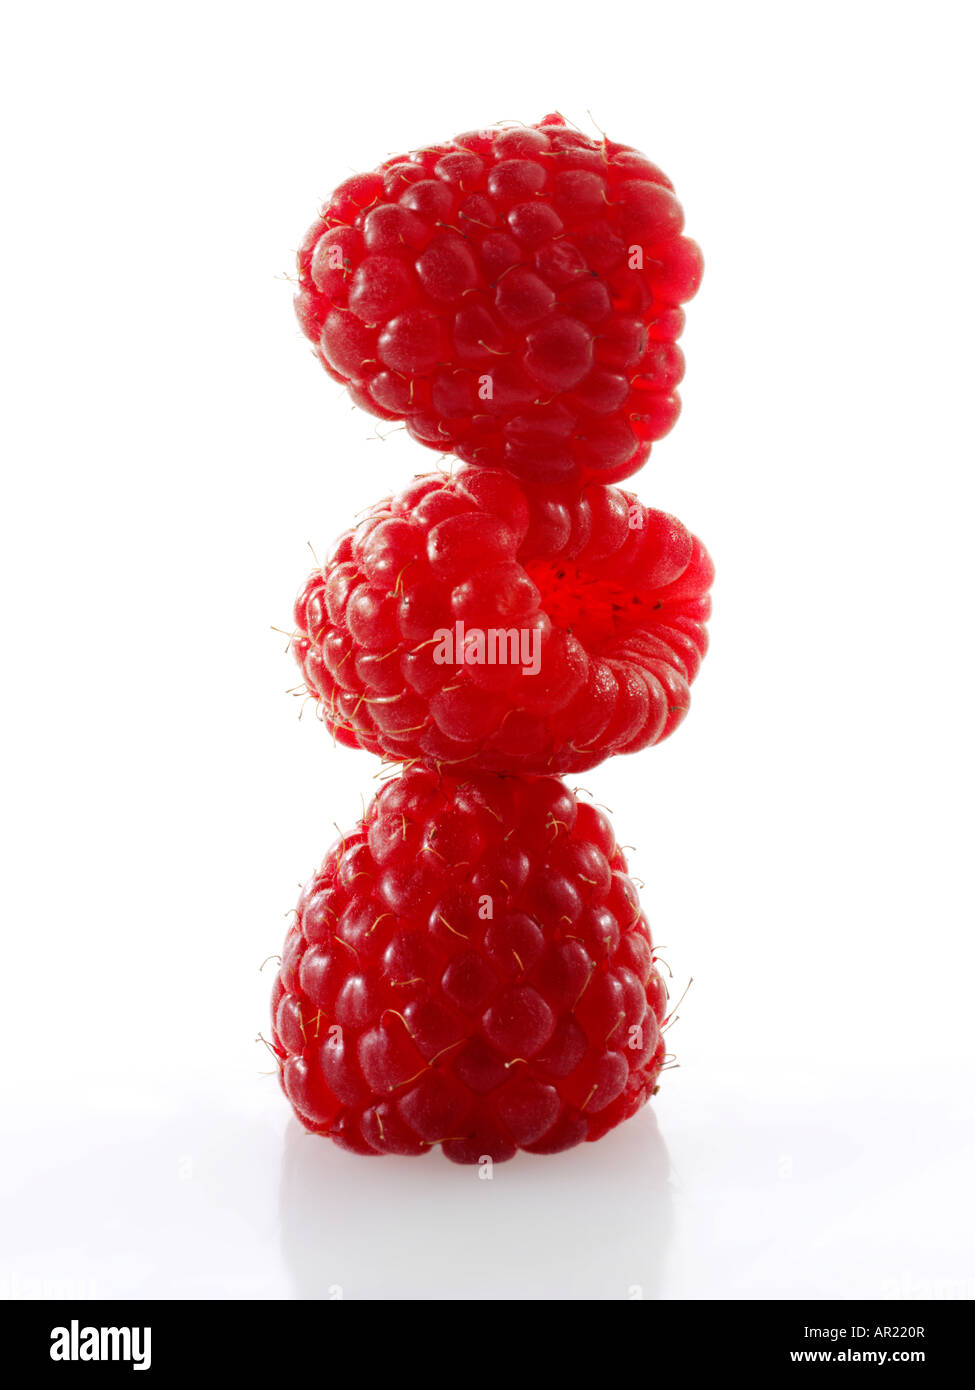 close up of a stylised stack of raspberries standing onto of each other - concept creative photo against a white - Stock Image